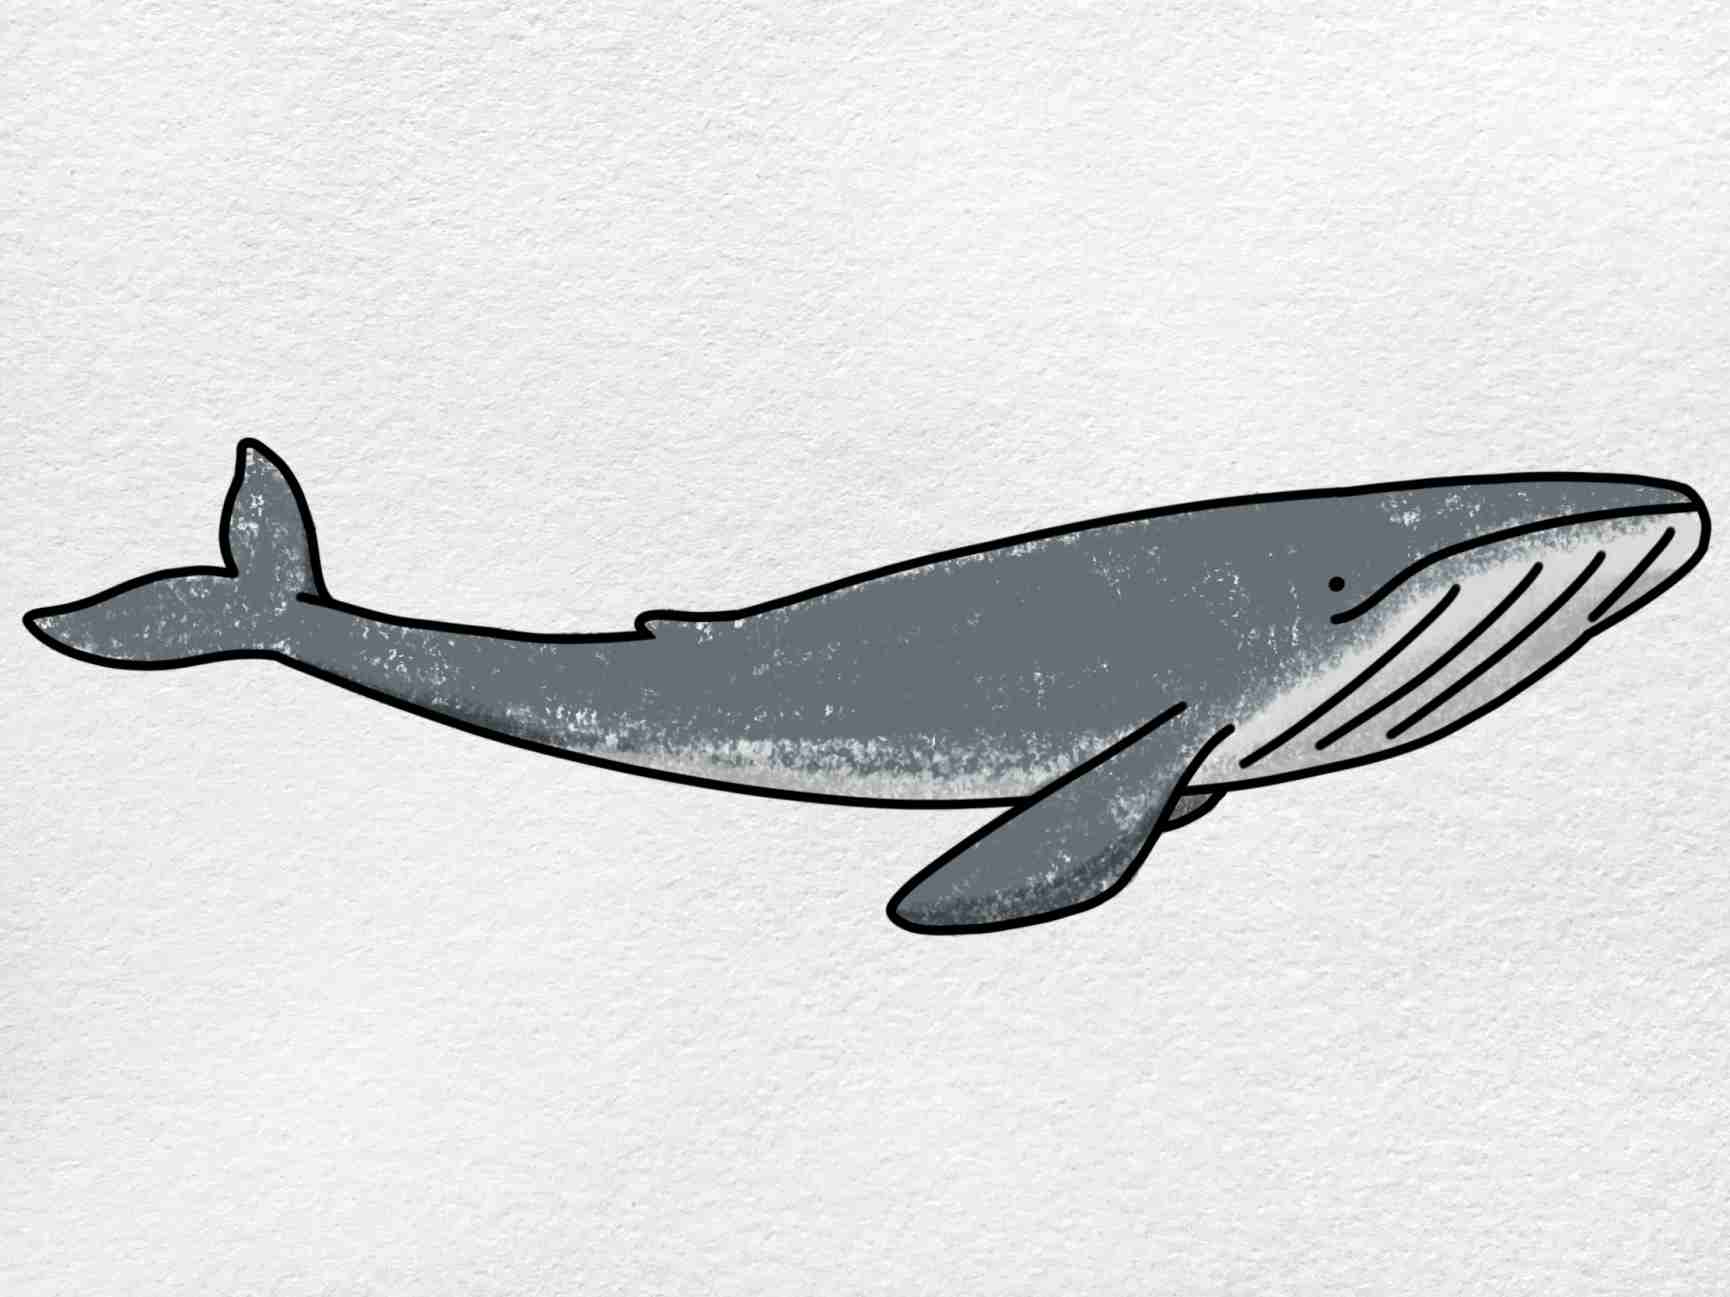 Blue Whale Drawing: Step 6